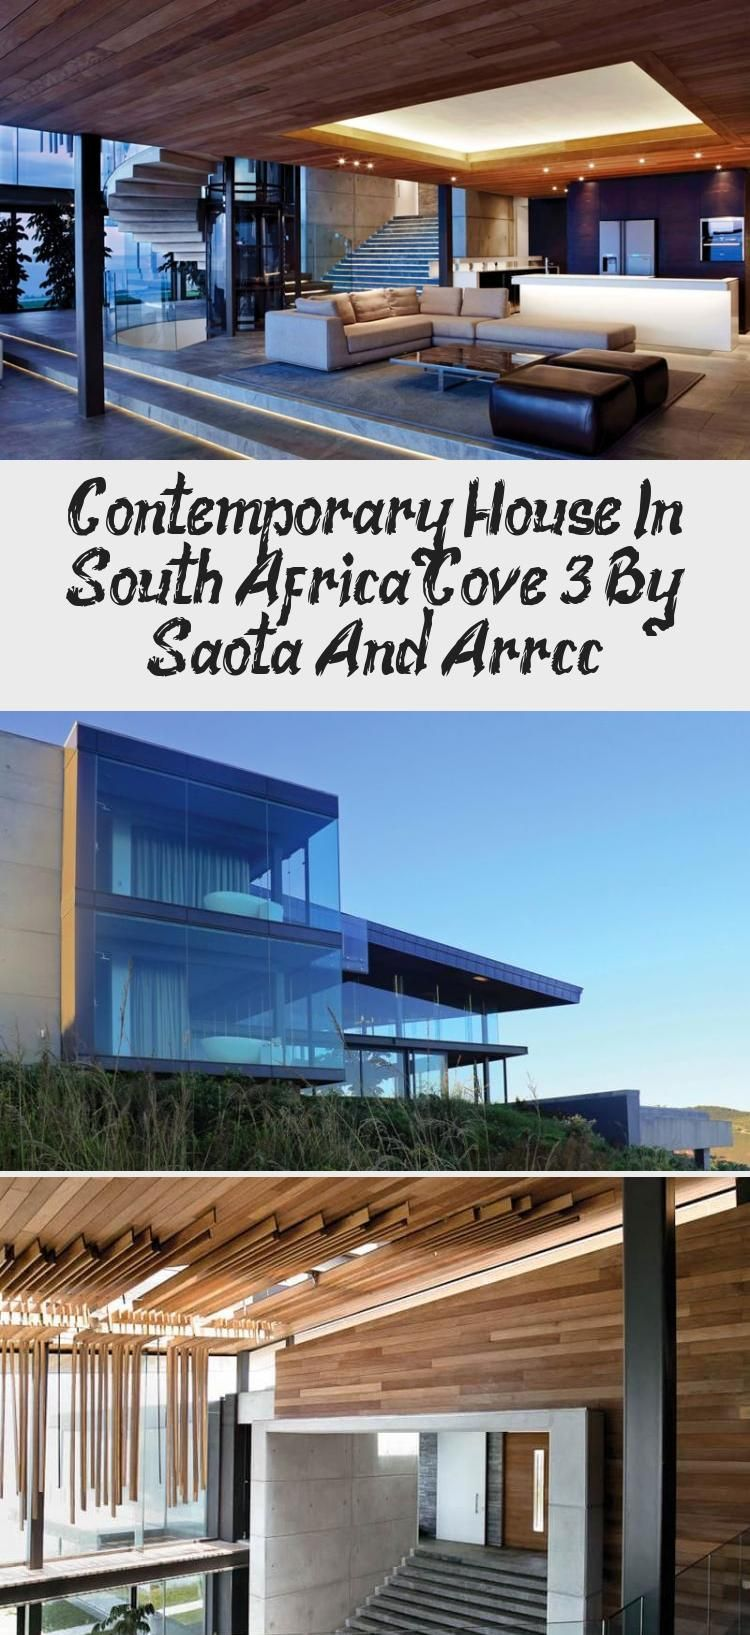 Photo of Contemporary House In South Africa: Cove 3 By Saota And Arrcc – Elsie's Blog